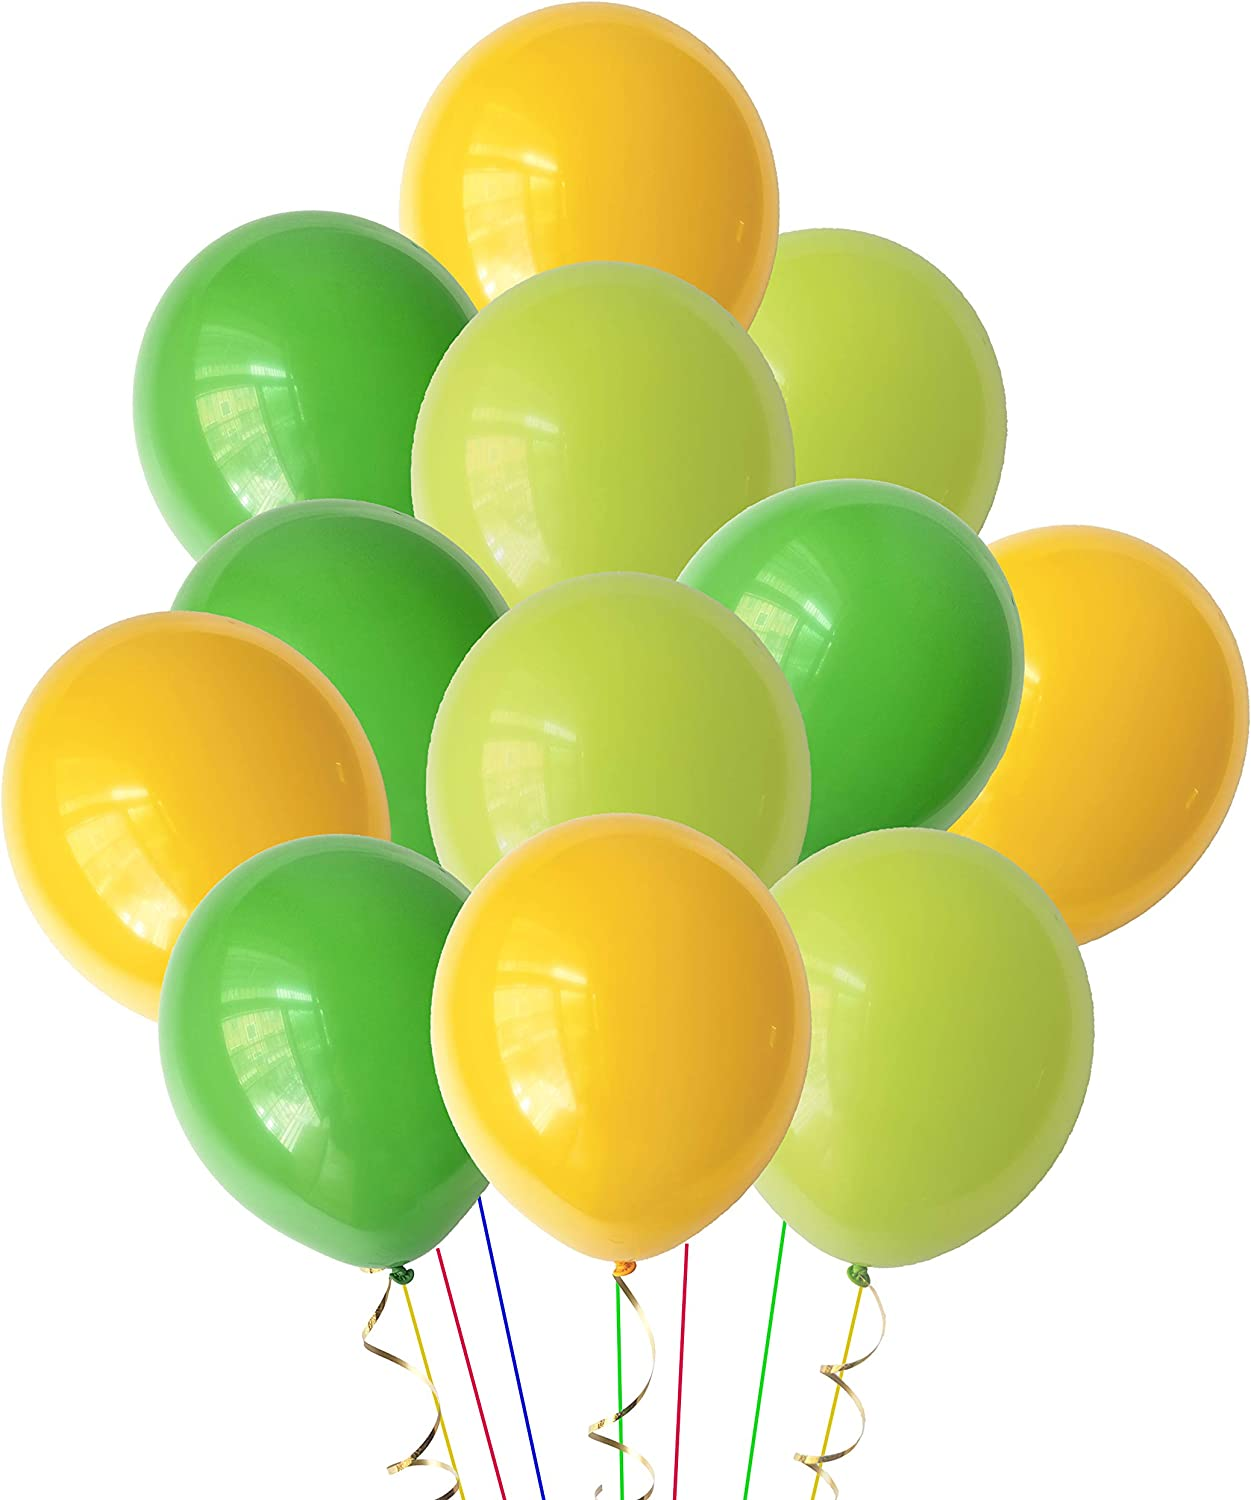 Pastel assorted Rainbow Color 80 packs 10 inch Balloons for Birthday Wedding Baby Bridal Shower Party Decorations